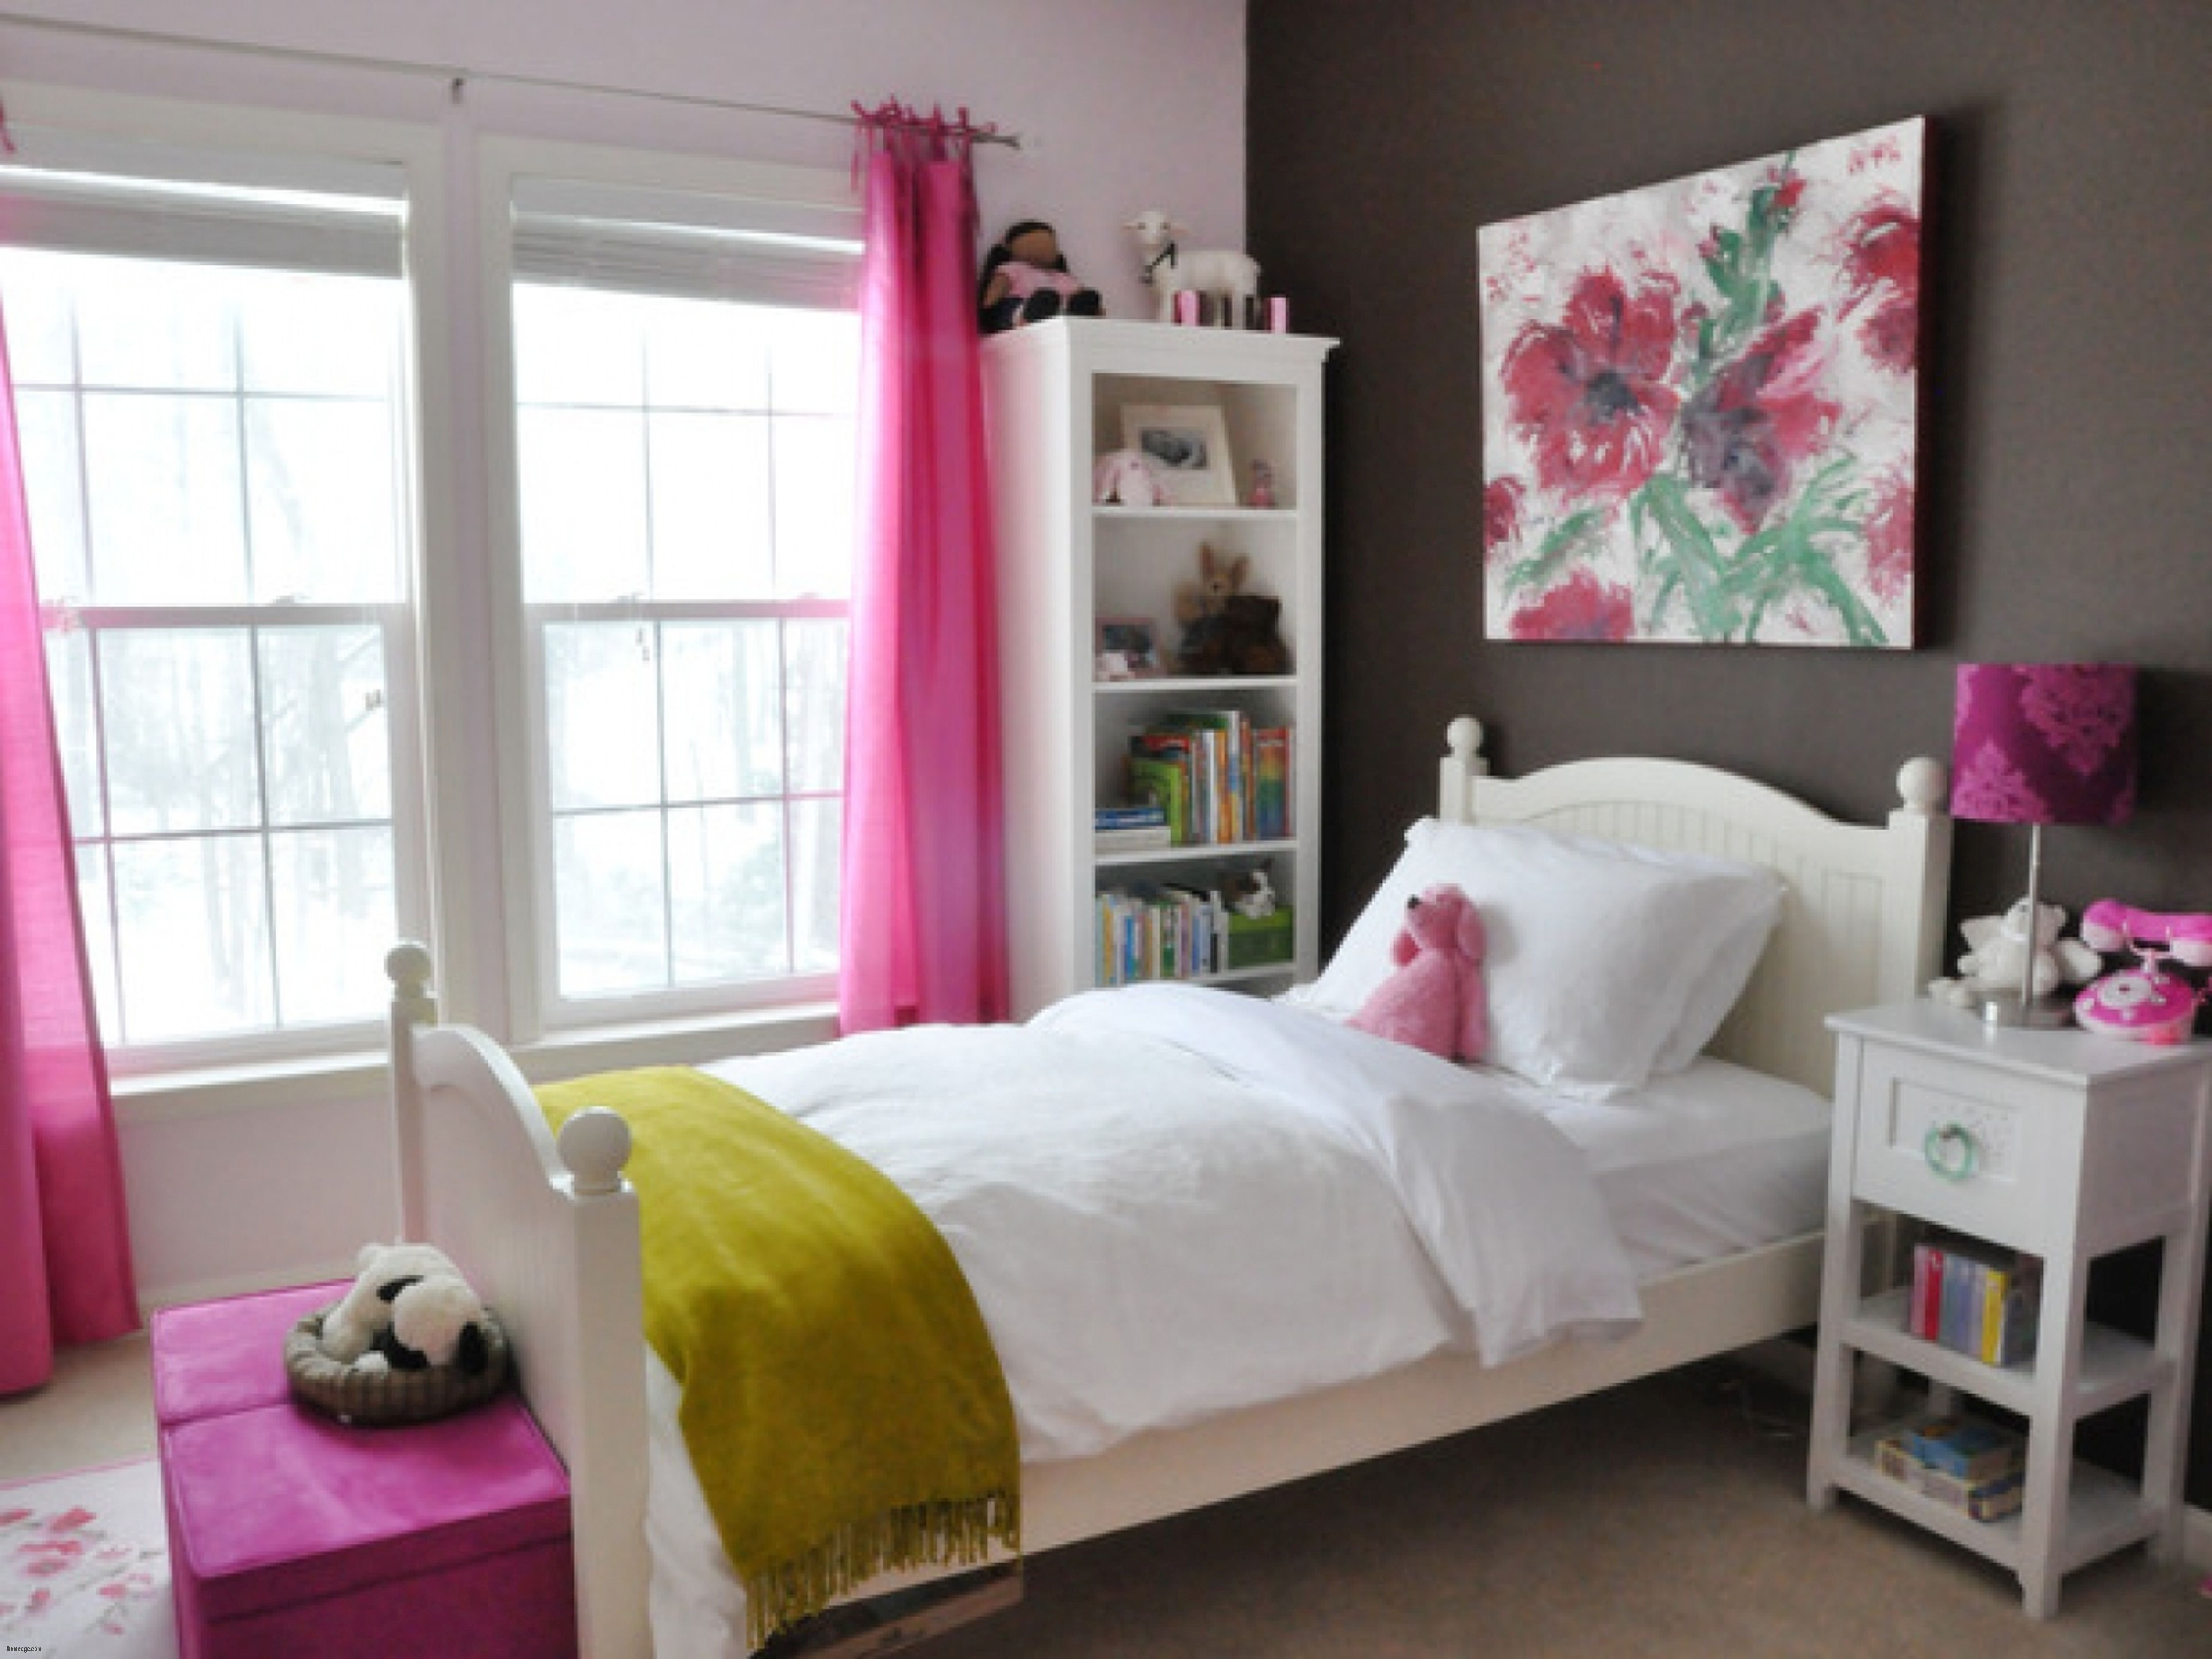 Inspirational Wonderful Cute Bedroom Ideas  Inspiring Cute Room Extraordinary Paint Design For Bedroom Inspiration